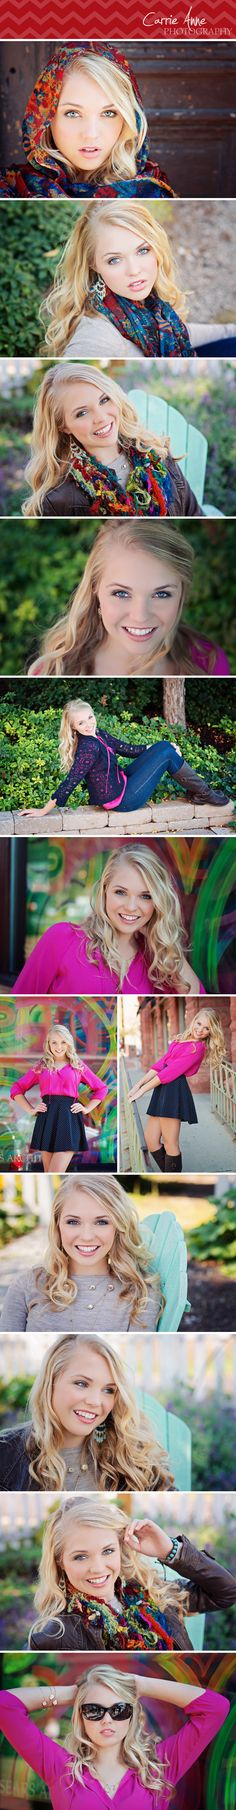 Gorgeous senior session by Carrie Anne Photography. #highschool #senior #portraits #photography #photogpinspiration